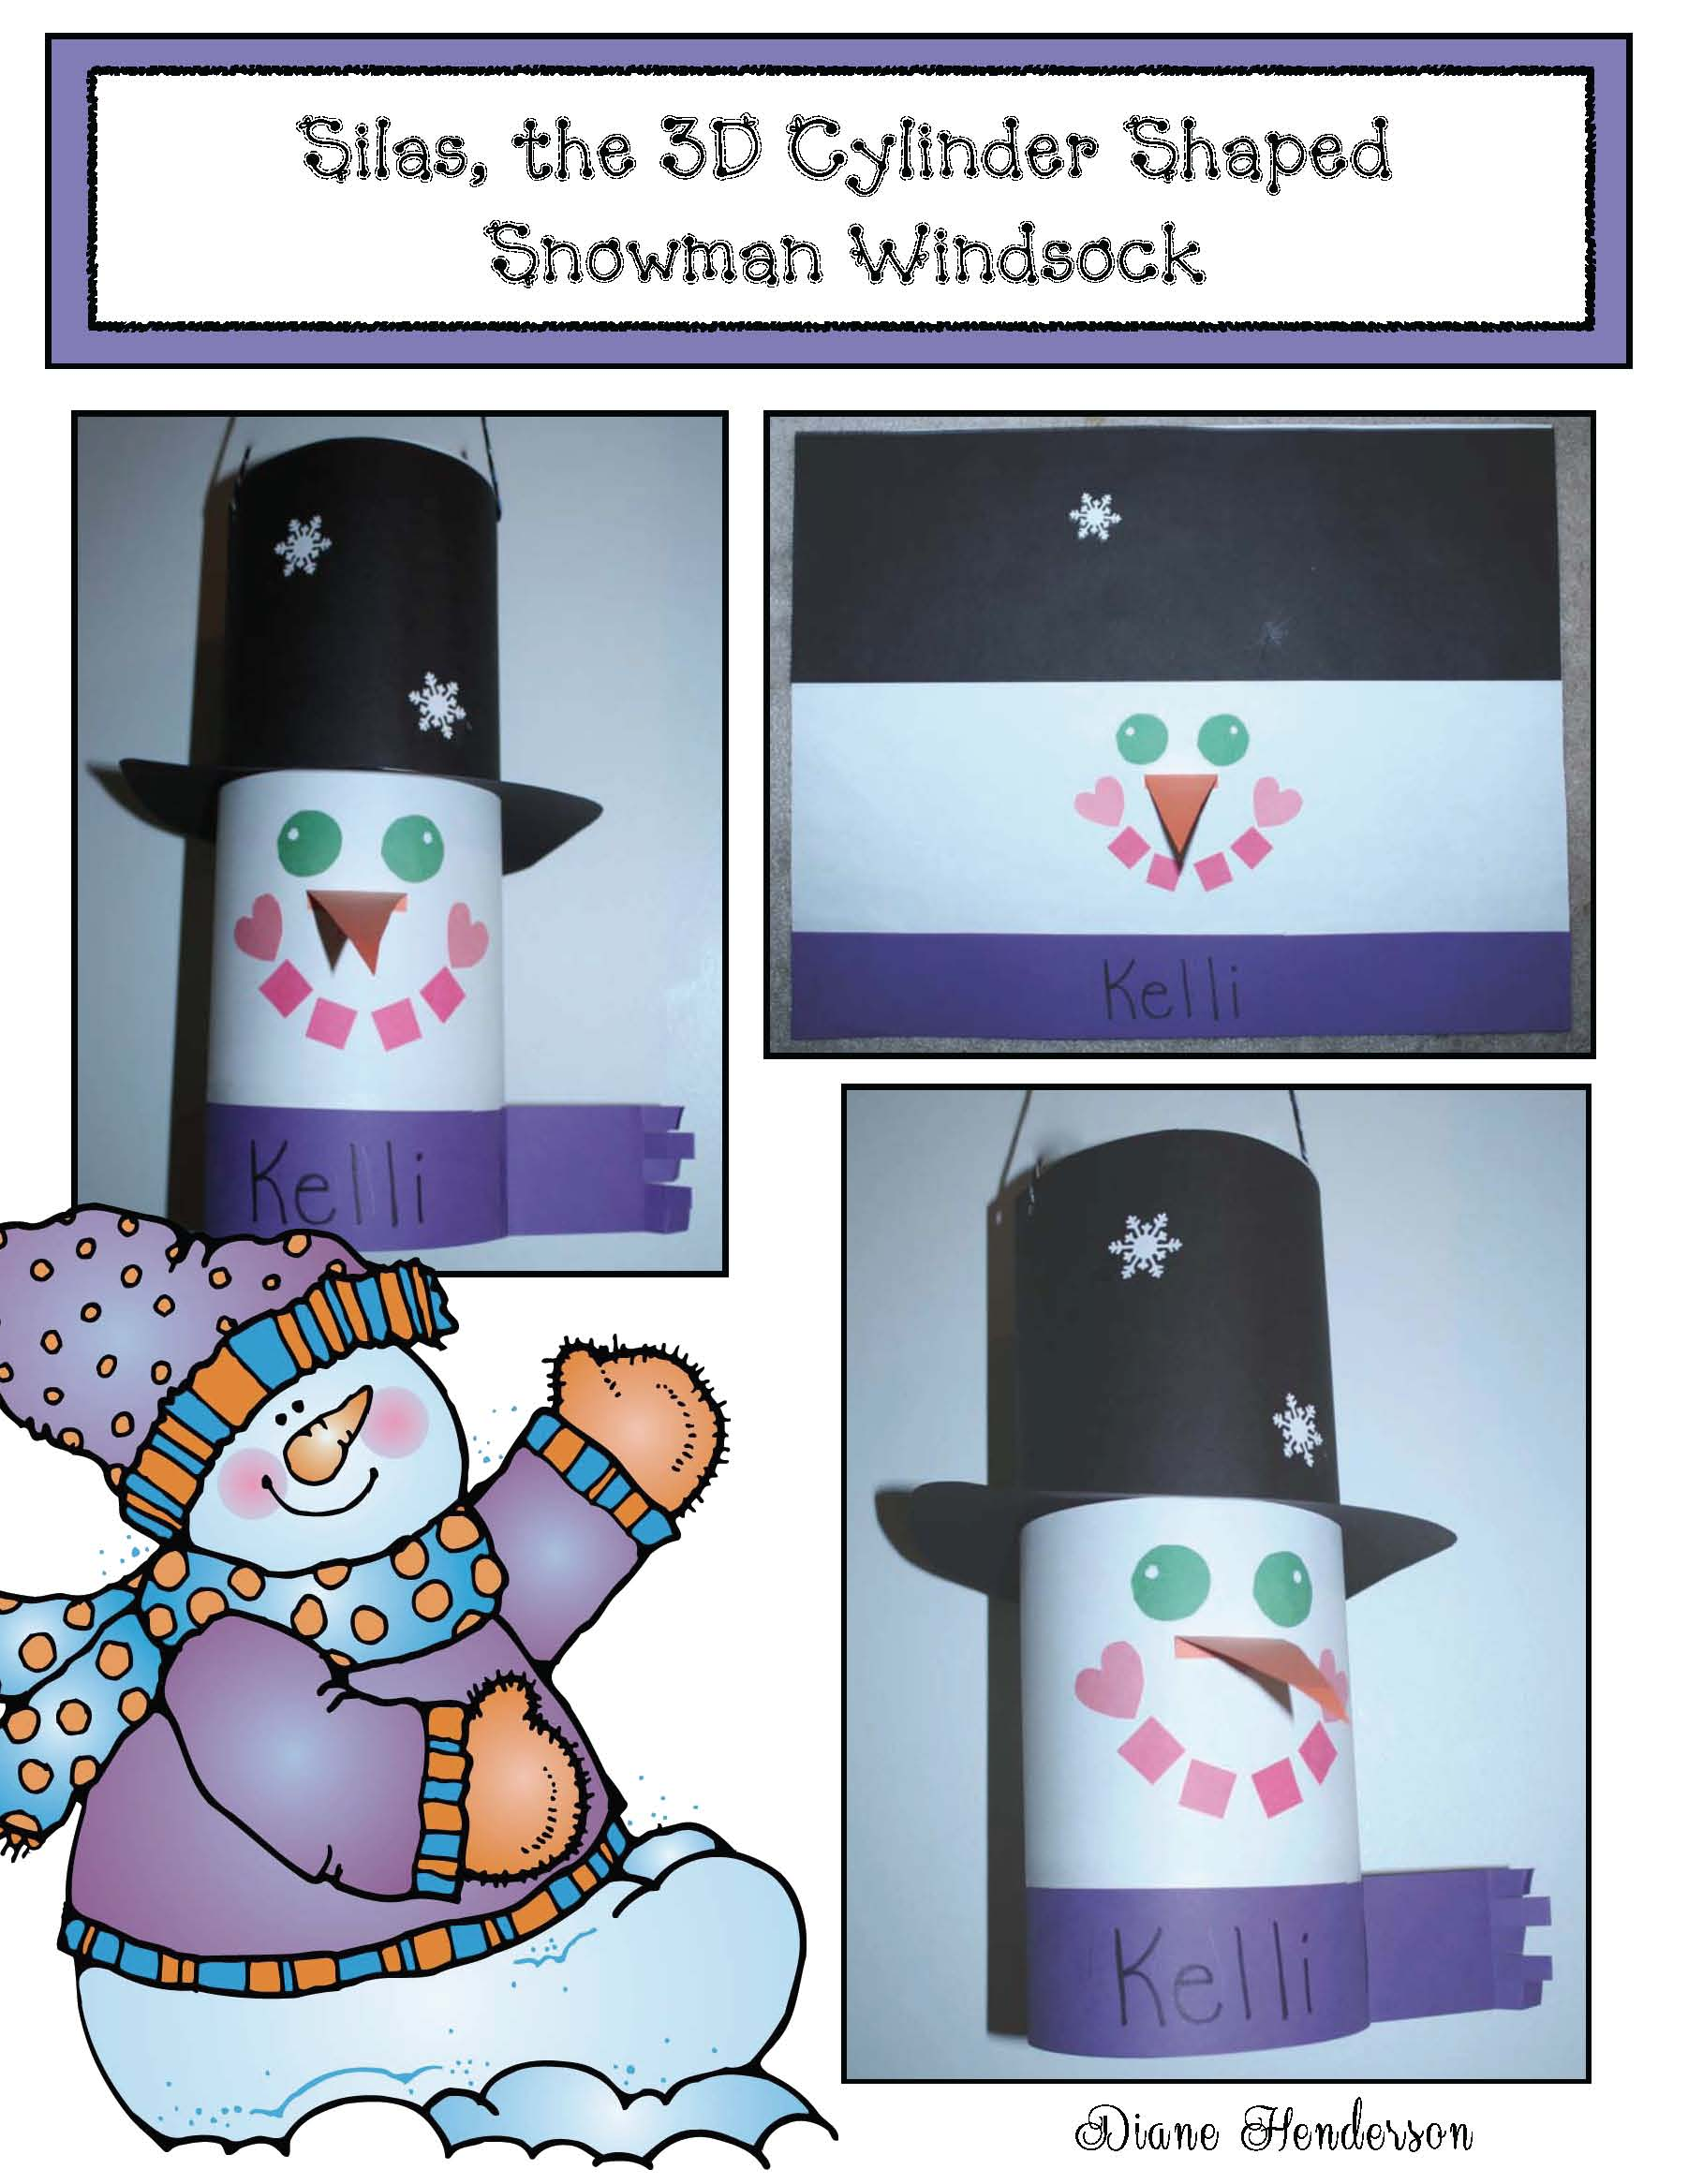 silas cover silas 3D shaped snowman windsock 2